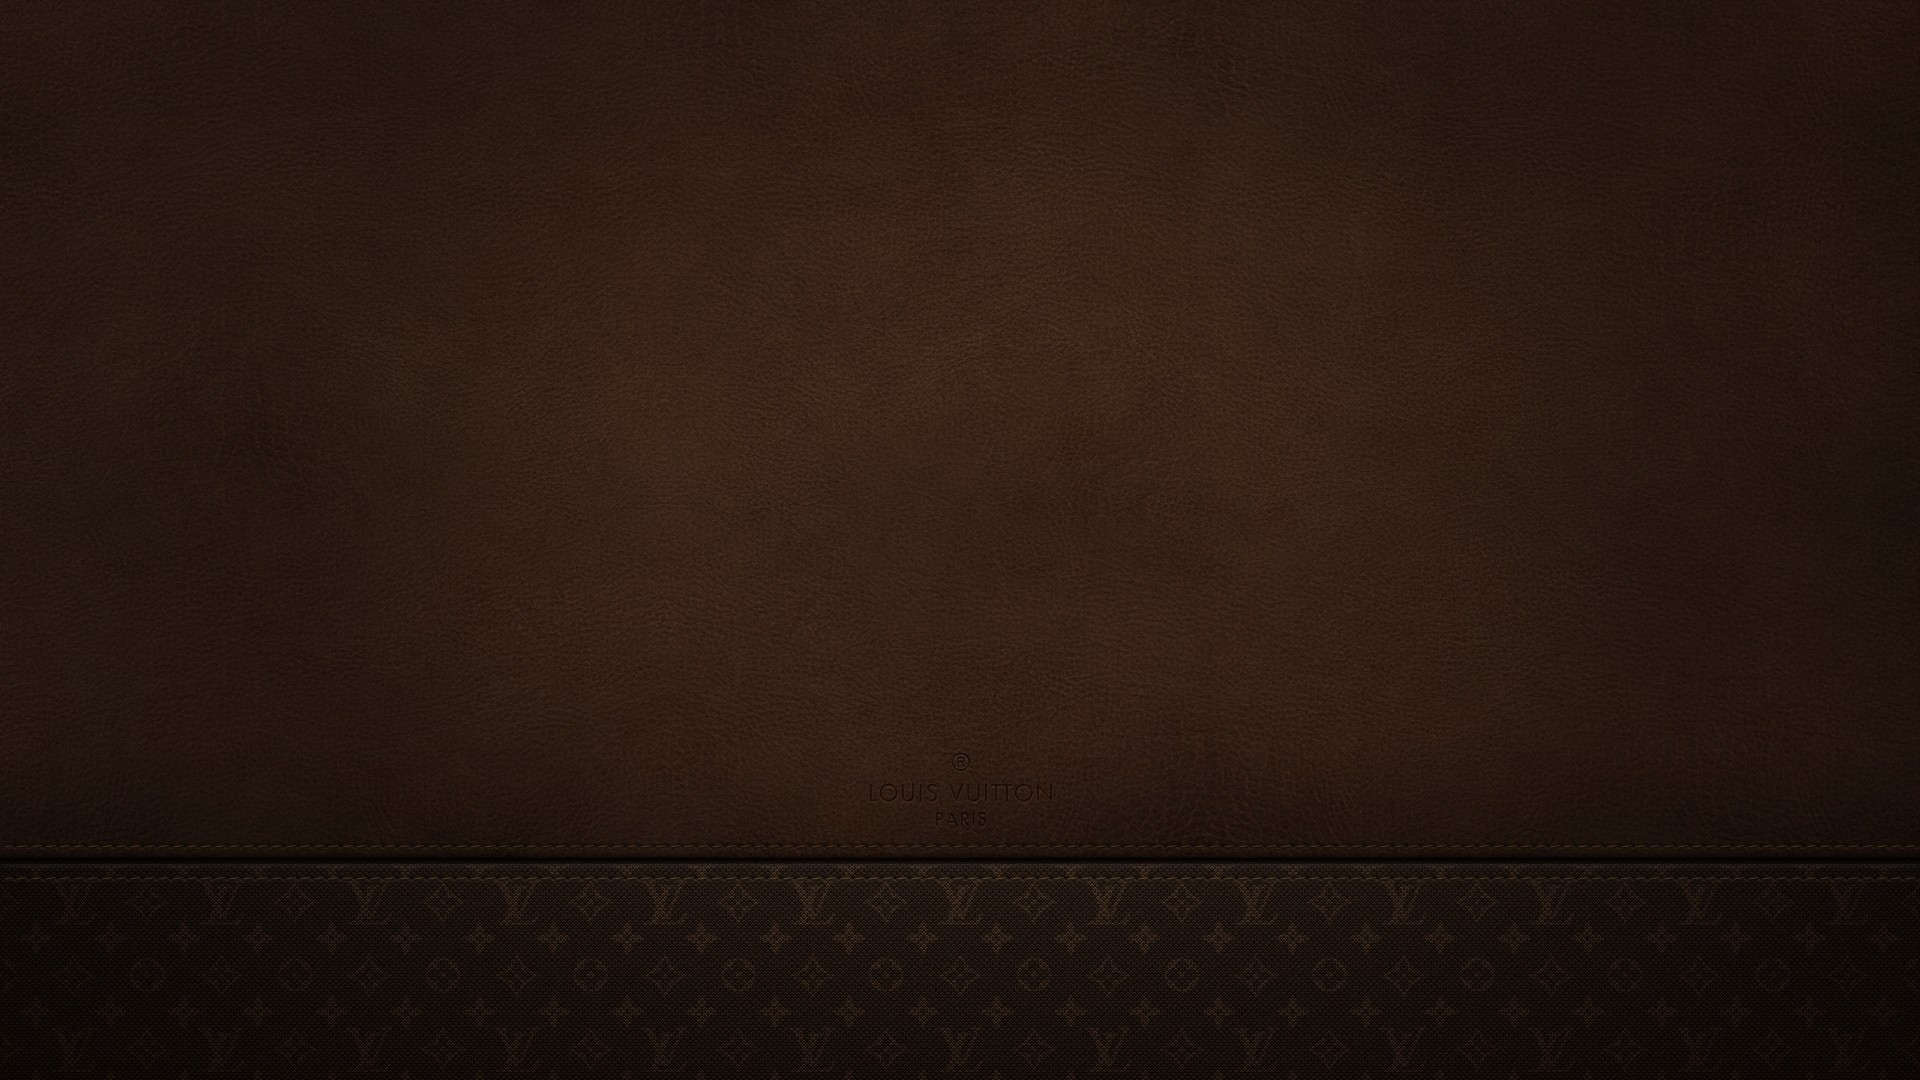 1920x1080 Wallpaper Louis vuitton, Leather, Brand